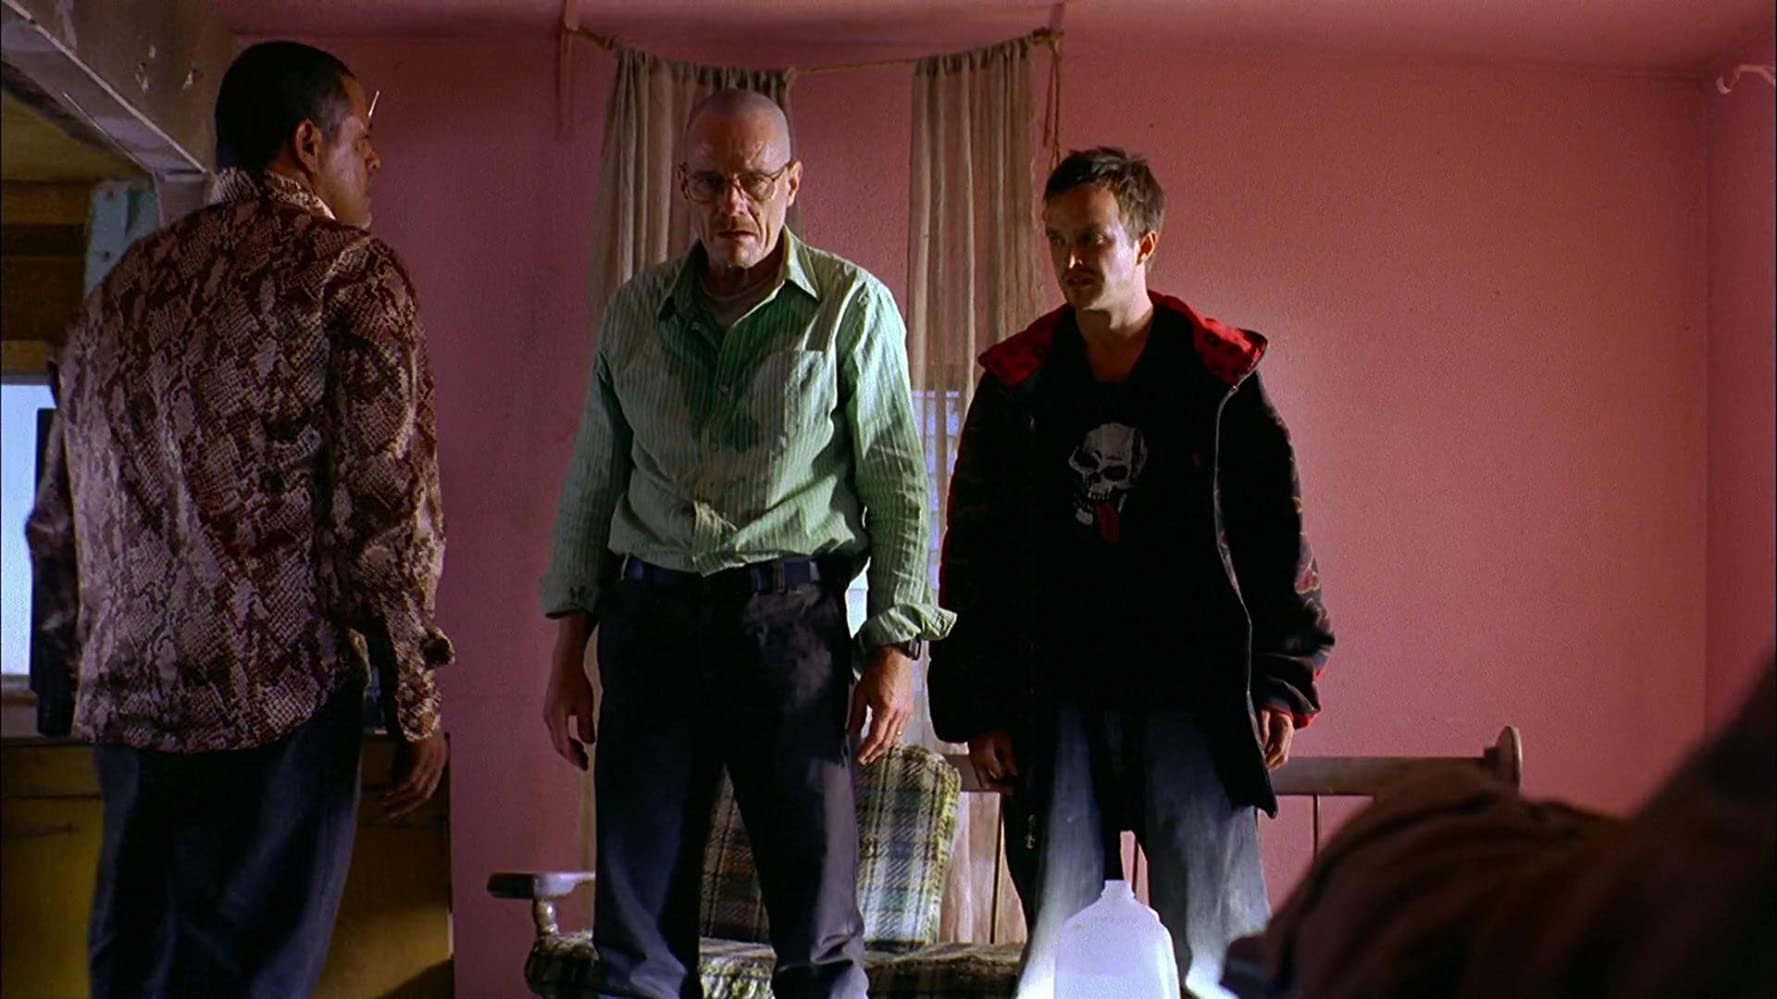 Bryan Cranston, Raymond Cruz, and Aaron Paul in Breaking Bad (2008)